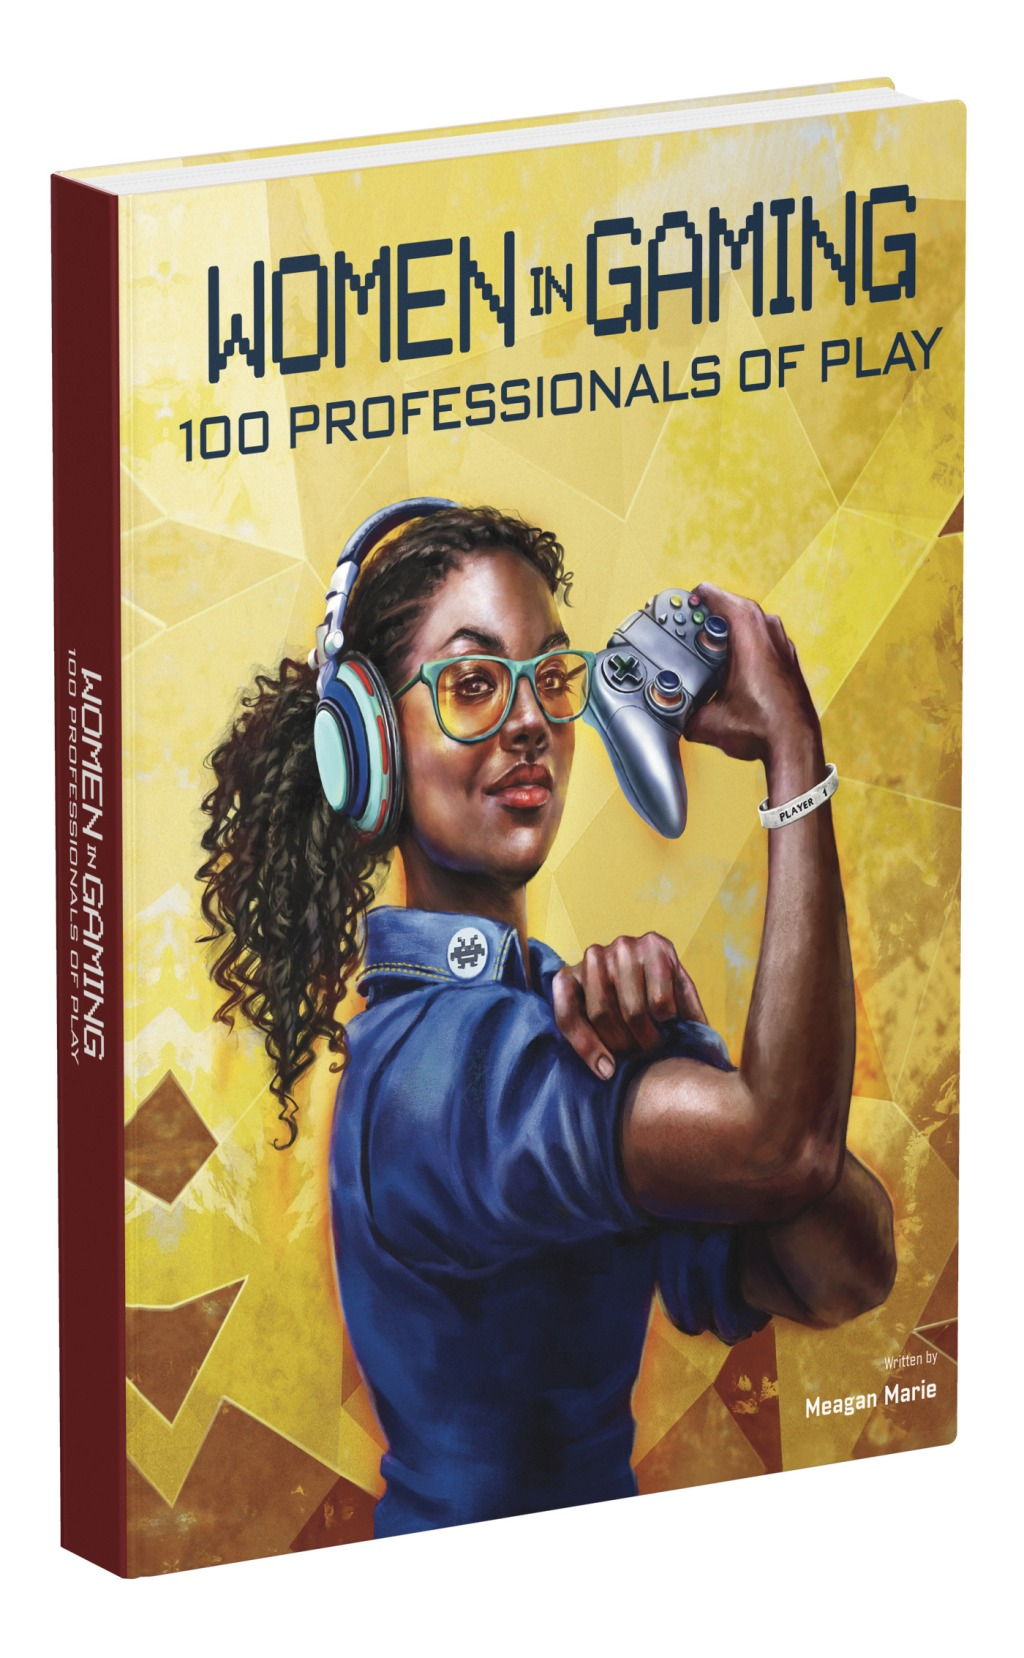 Women in Gaming: 100 Professionals of Play is now available as a book.